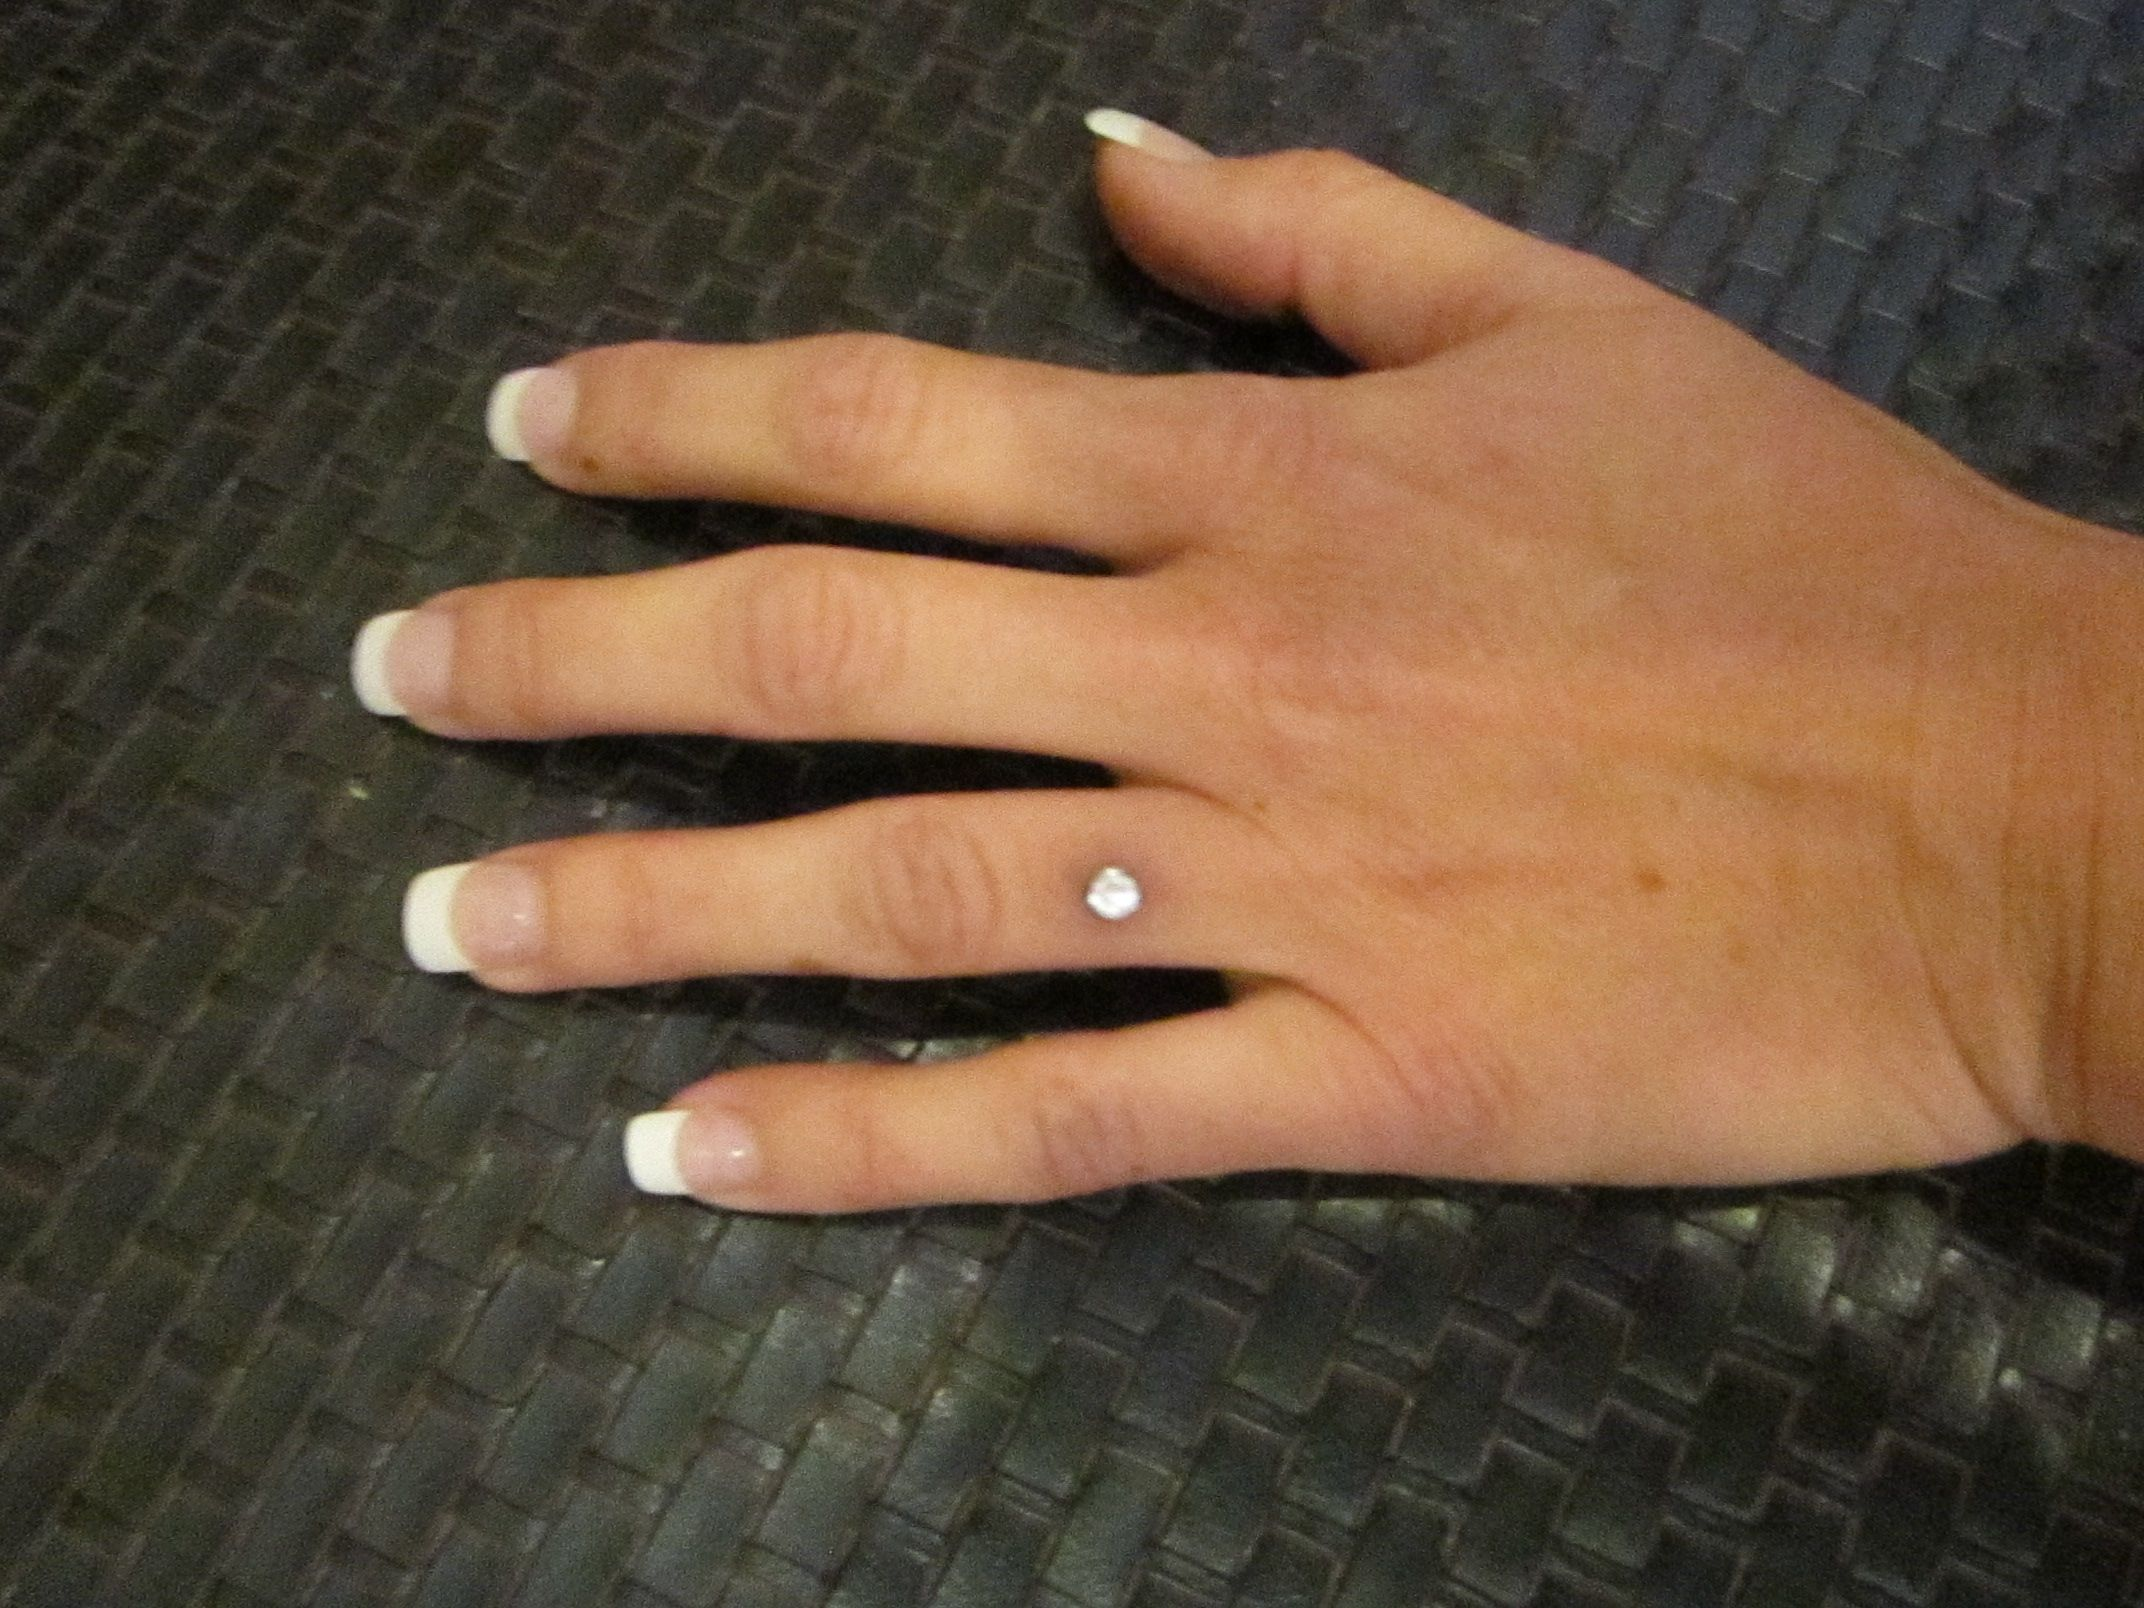 My Dermal Implant Piercing Engagement Ring WHAT A CUTE IDEA